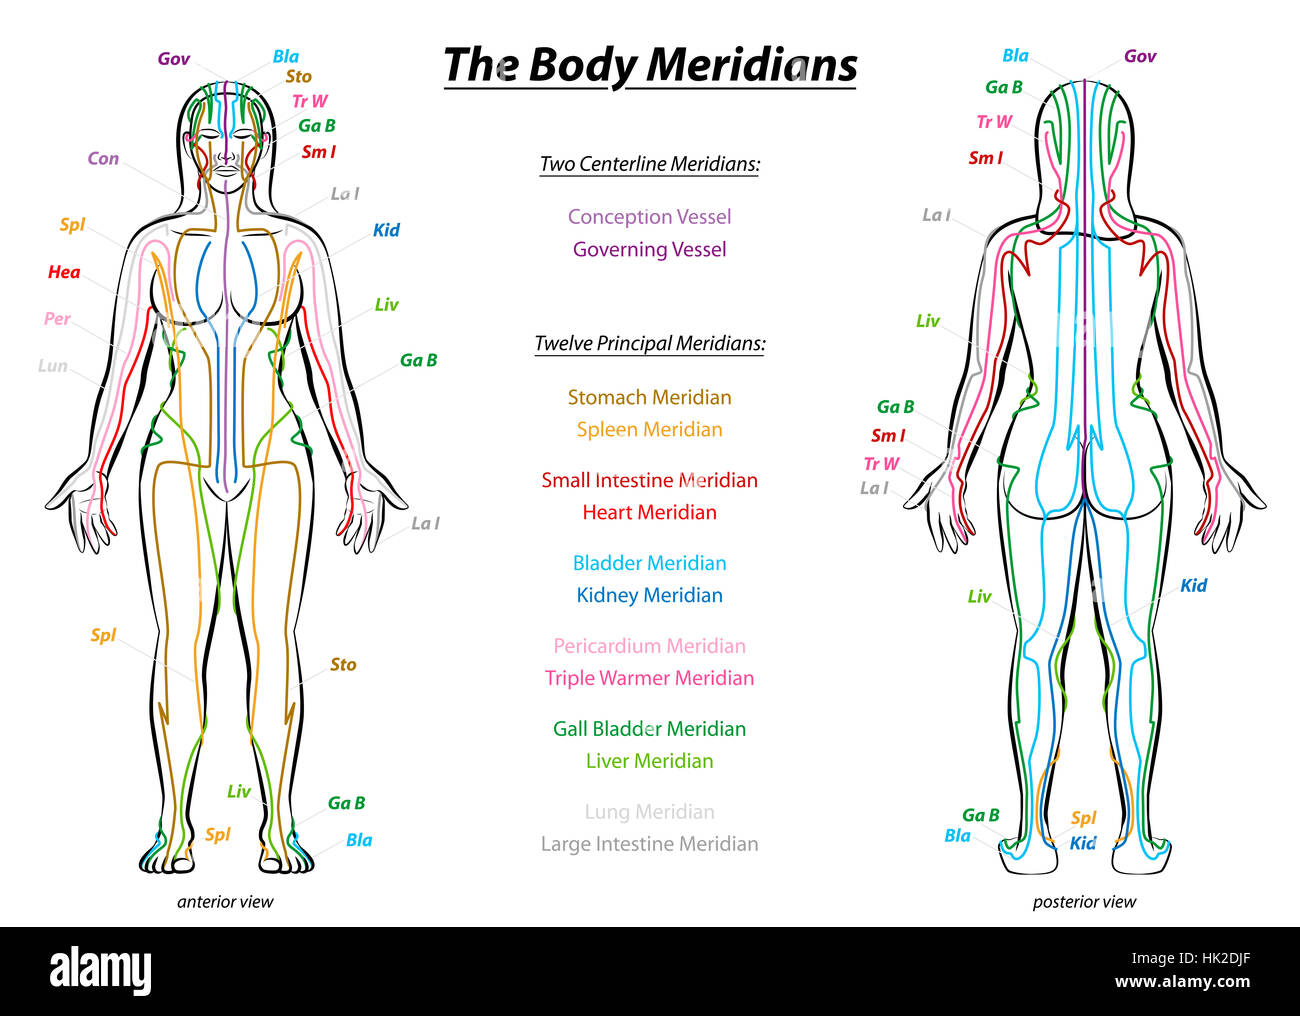 acupuncture meridian charts: Meridian system chart female body with principal and centerline